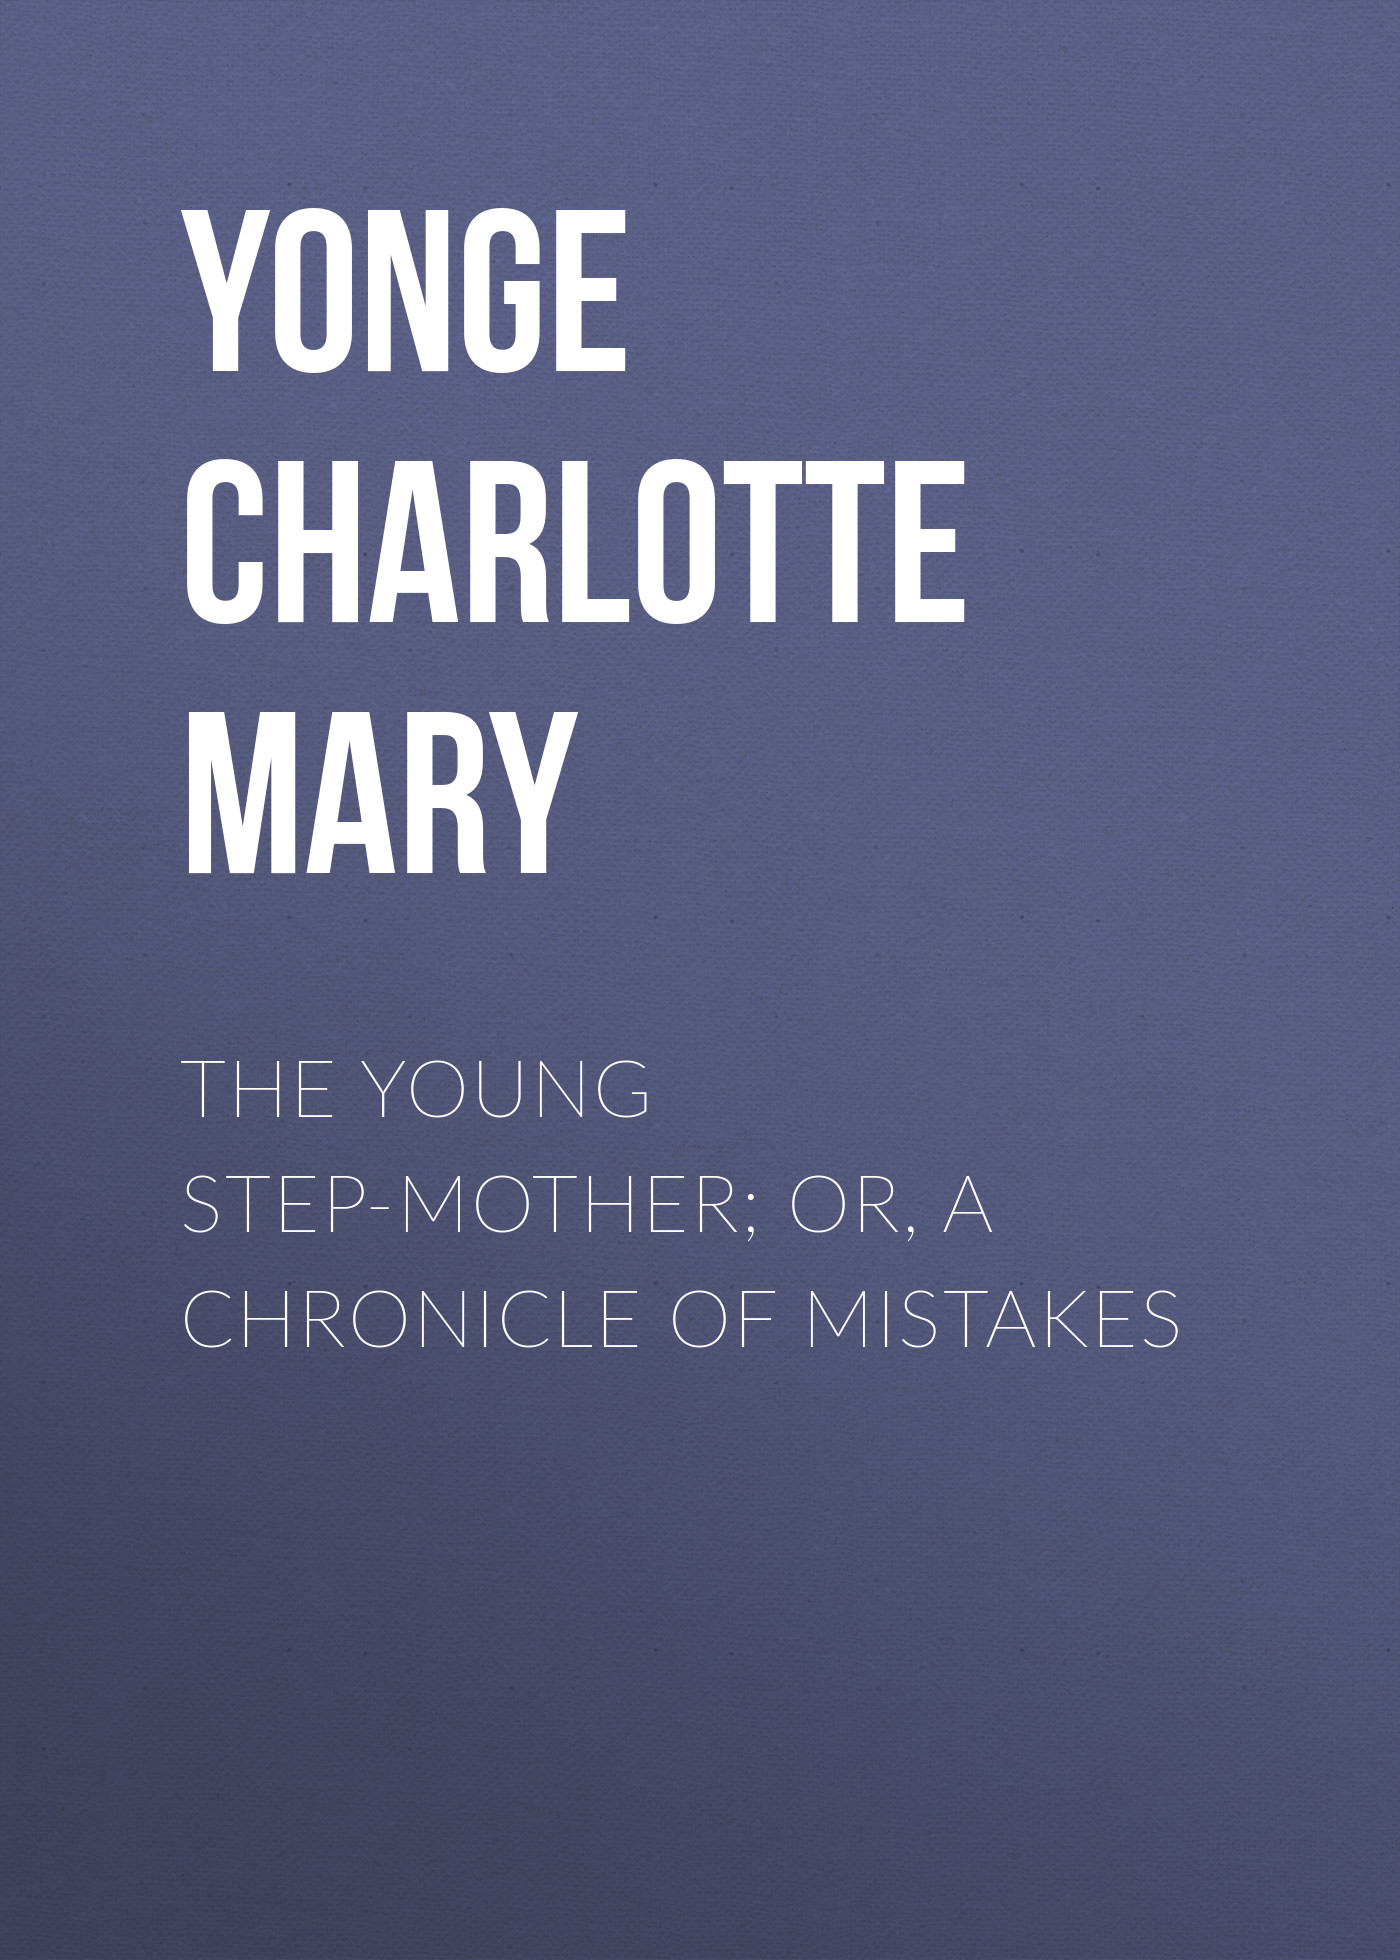 Yonge Charlotte Mary The Young Step-Mother; Or, A Chronicle of Mistakes